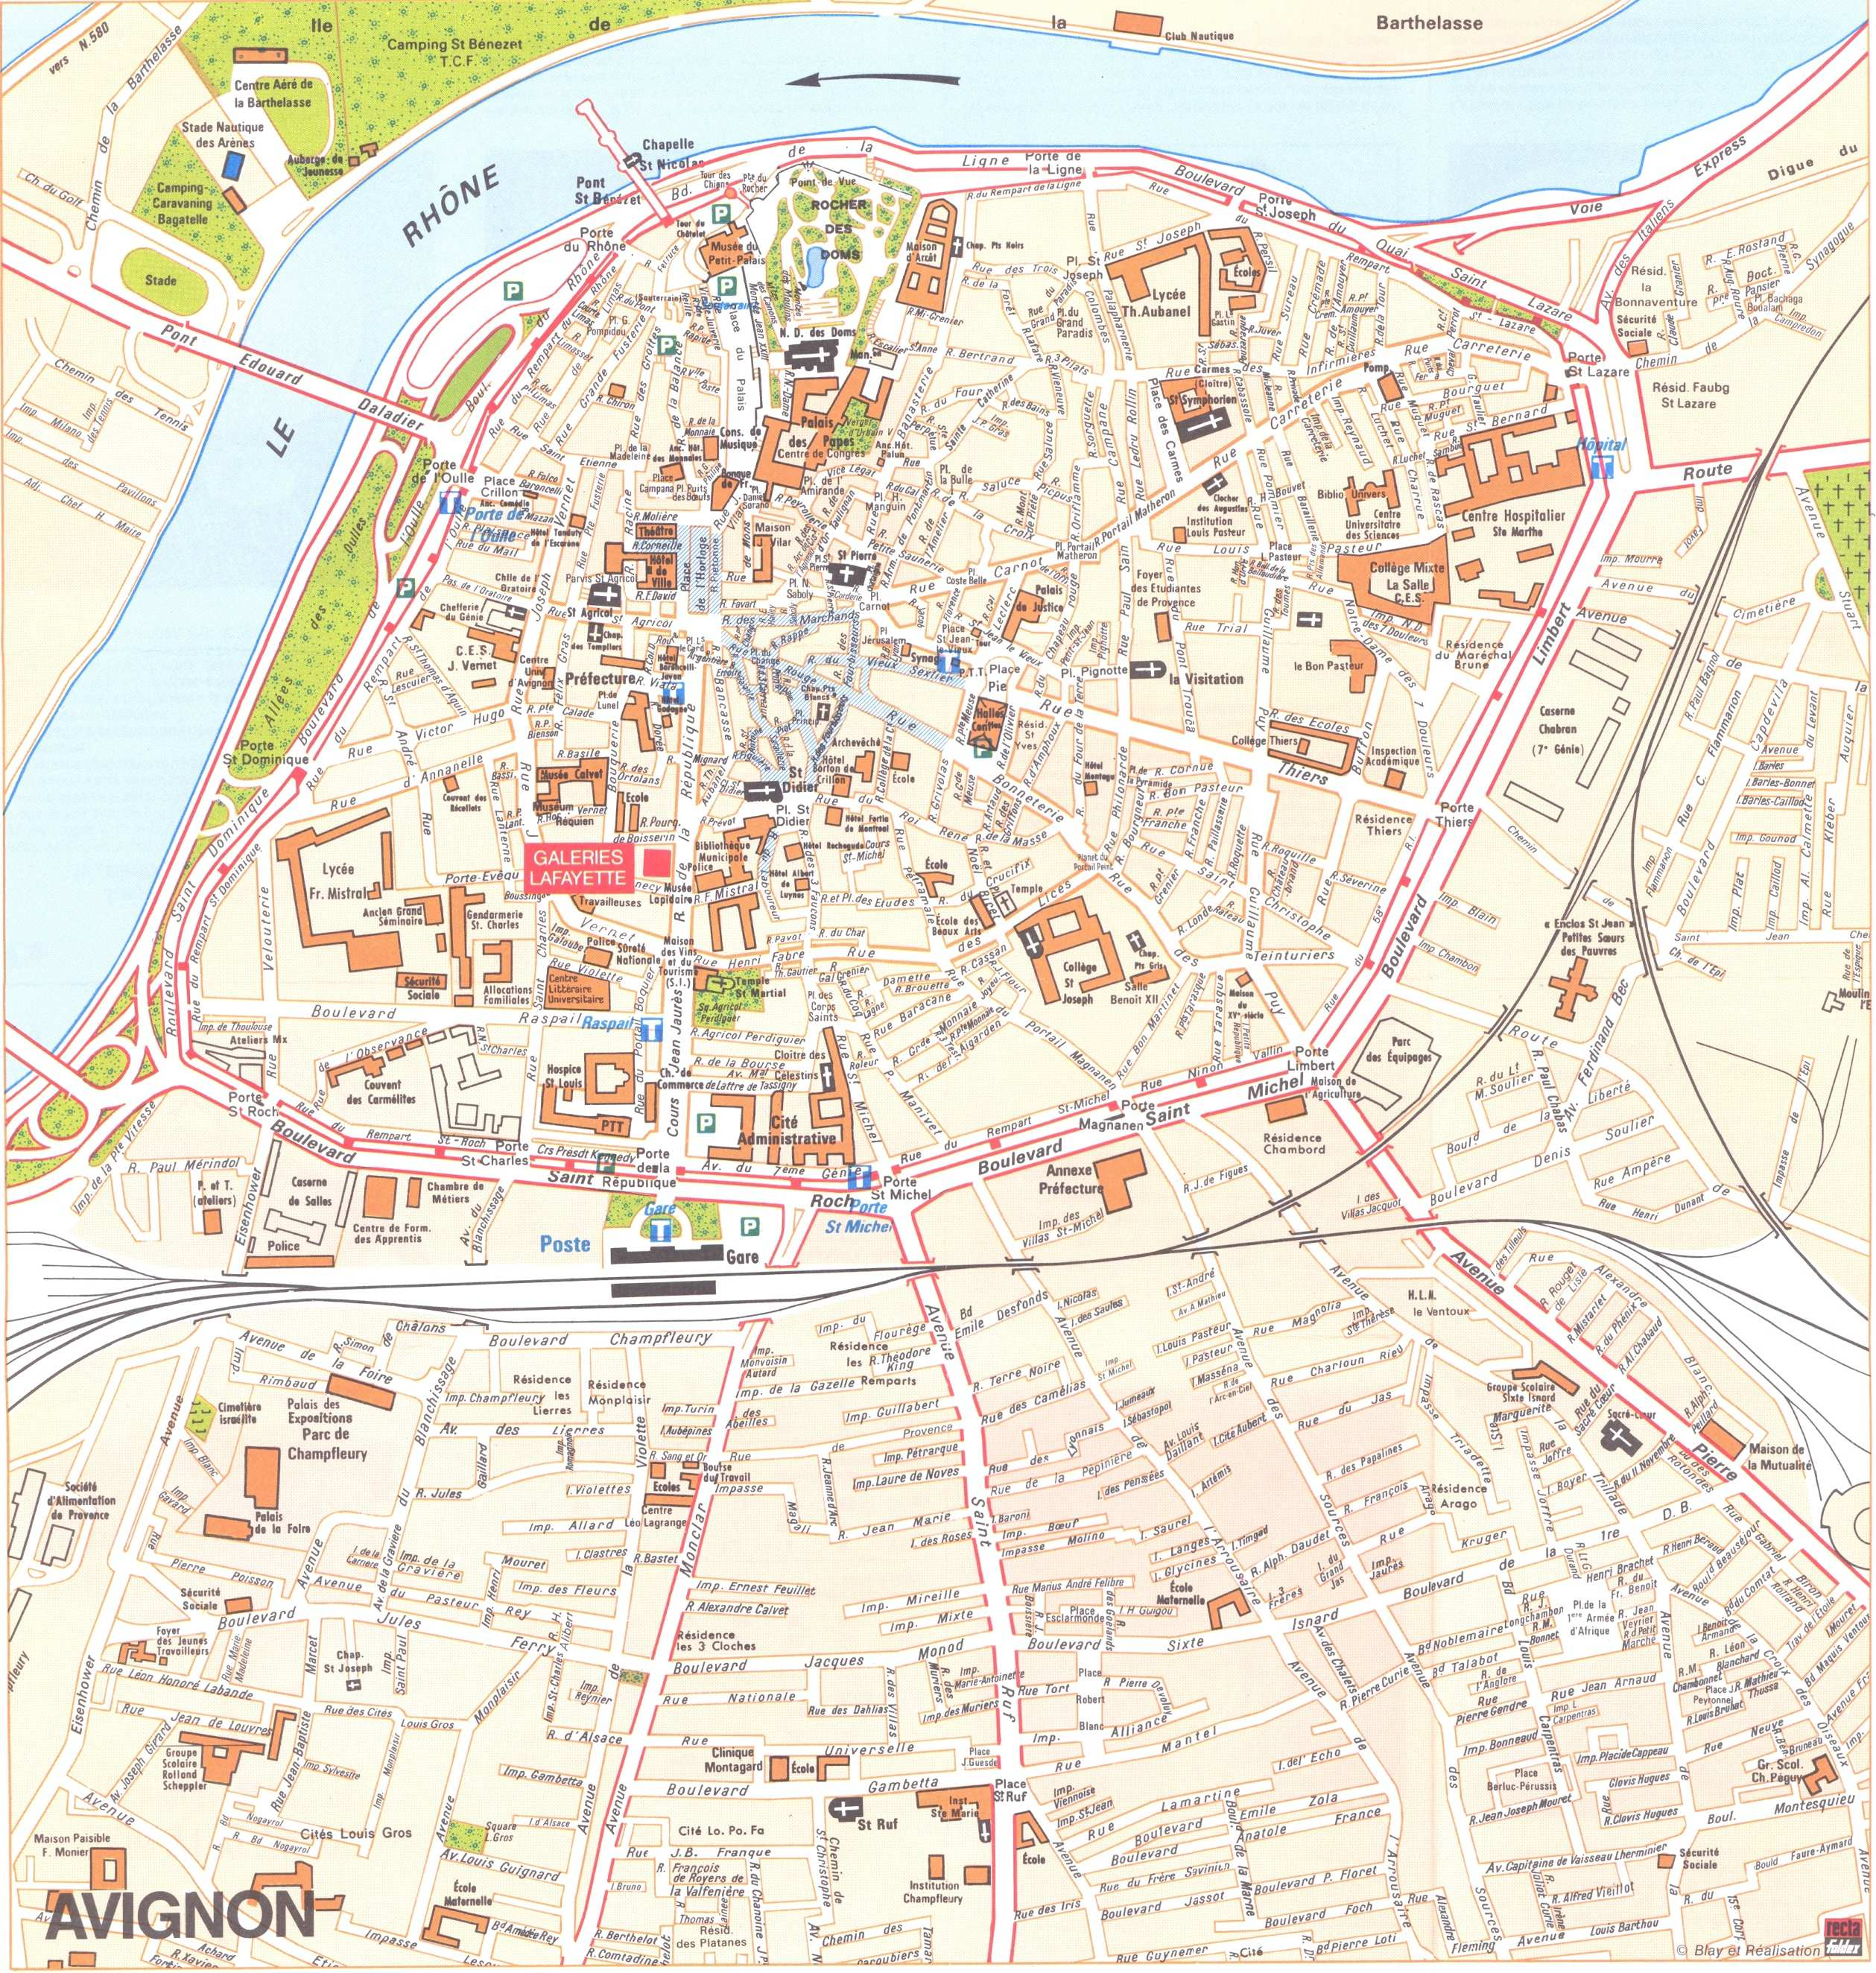 Large Avignon Maps for Free Download and Print HighResolution and